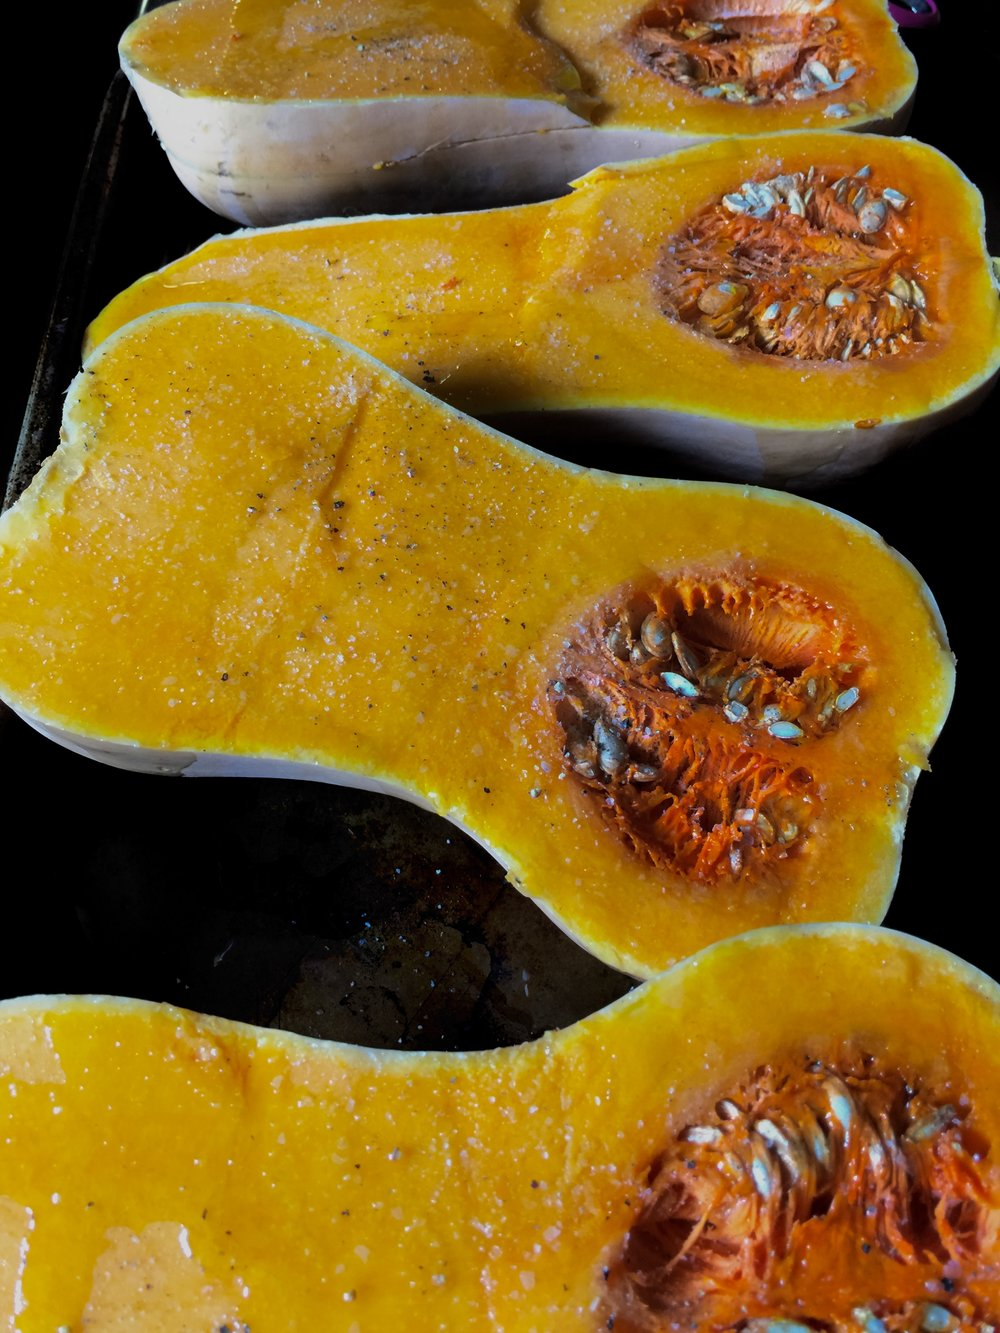 Prepping the beautiful and in-season butternut squash for roasting.